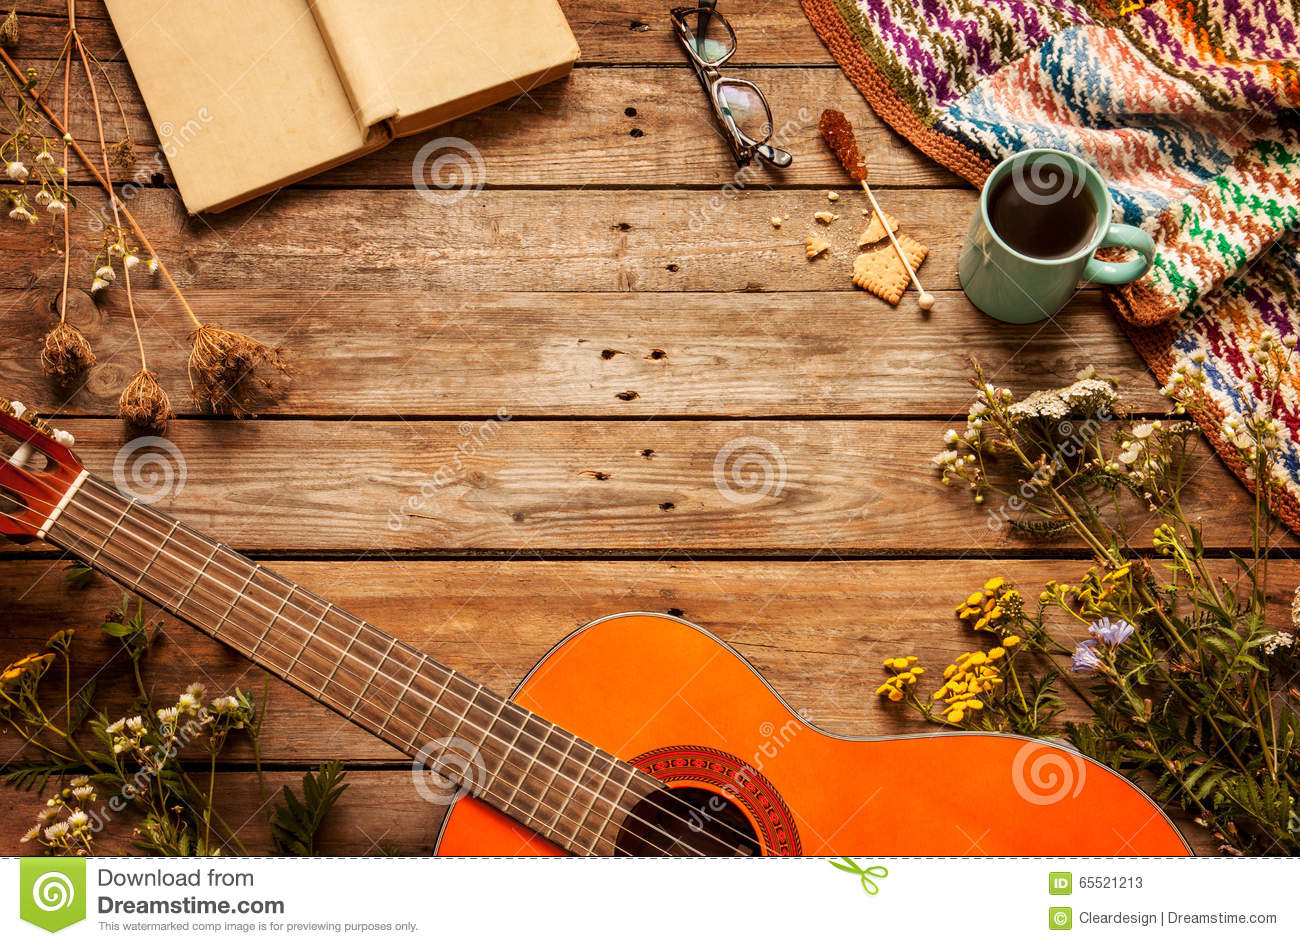 Book, blanket, coffee and classic guitar on wood